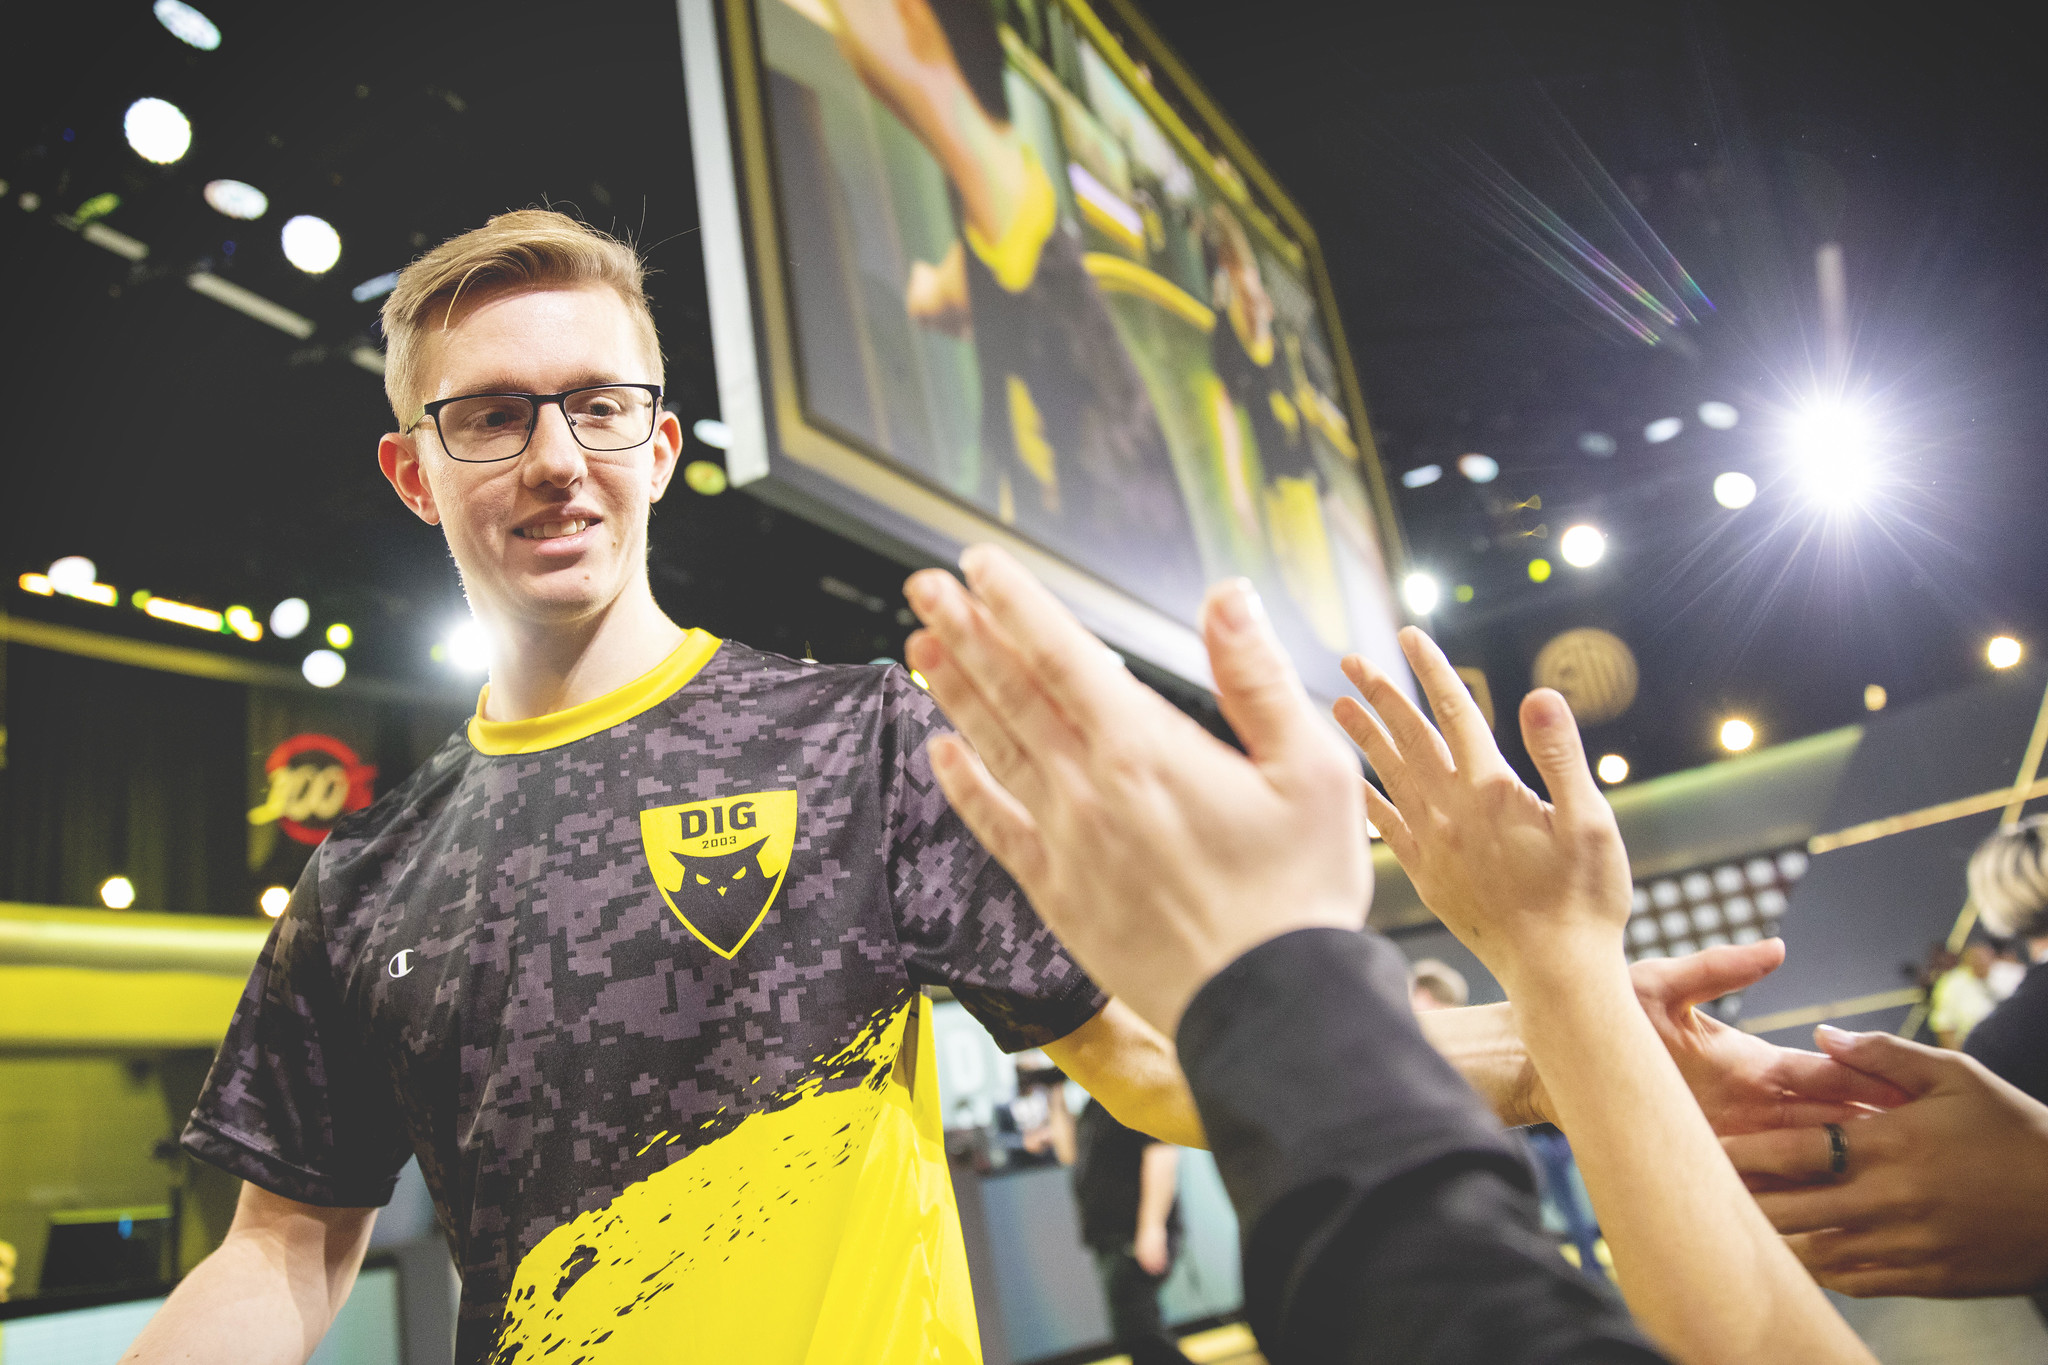 """League of Legends: DIG Froggen: """"In my opinion, compared to scrims, we've  underperformed."""" - Inven Global"""